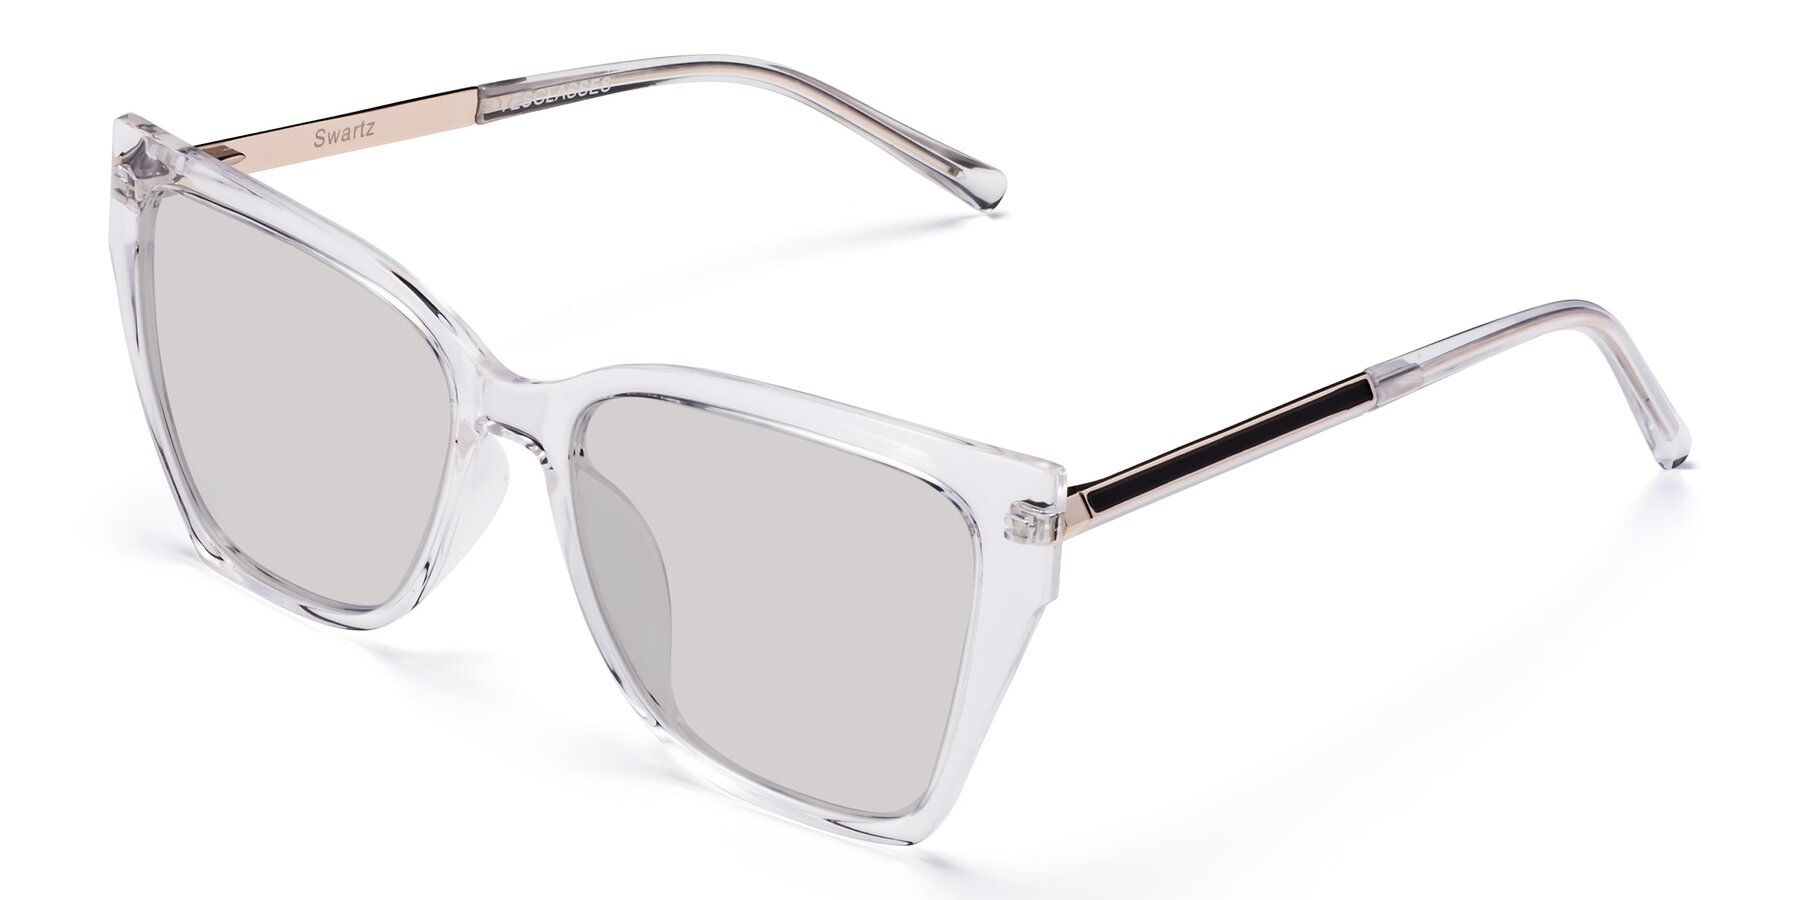 Angle of Swartz in Clear with Light Gray Tinted Lenses